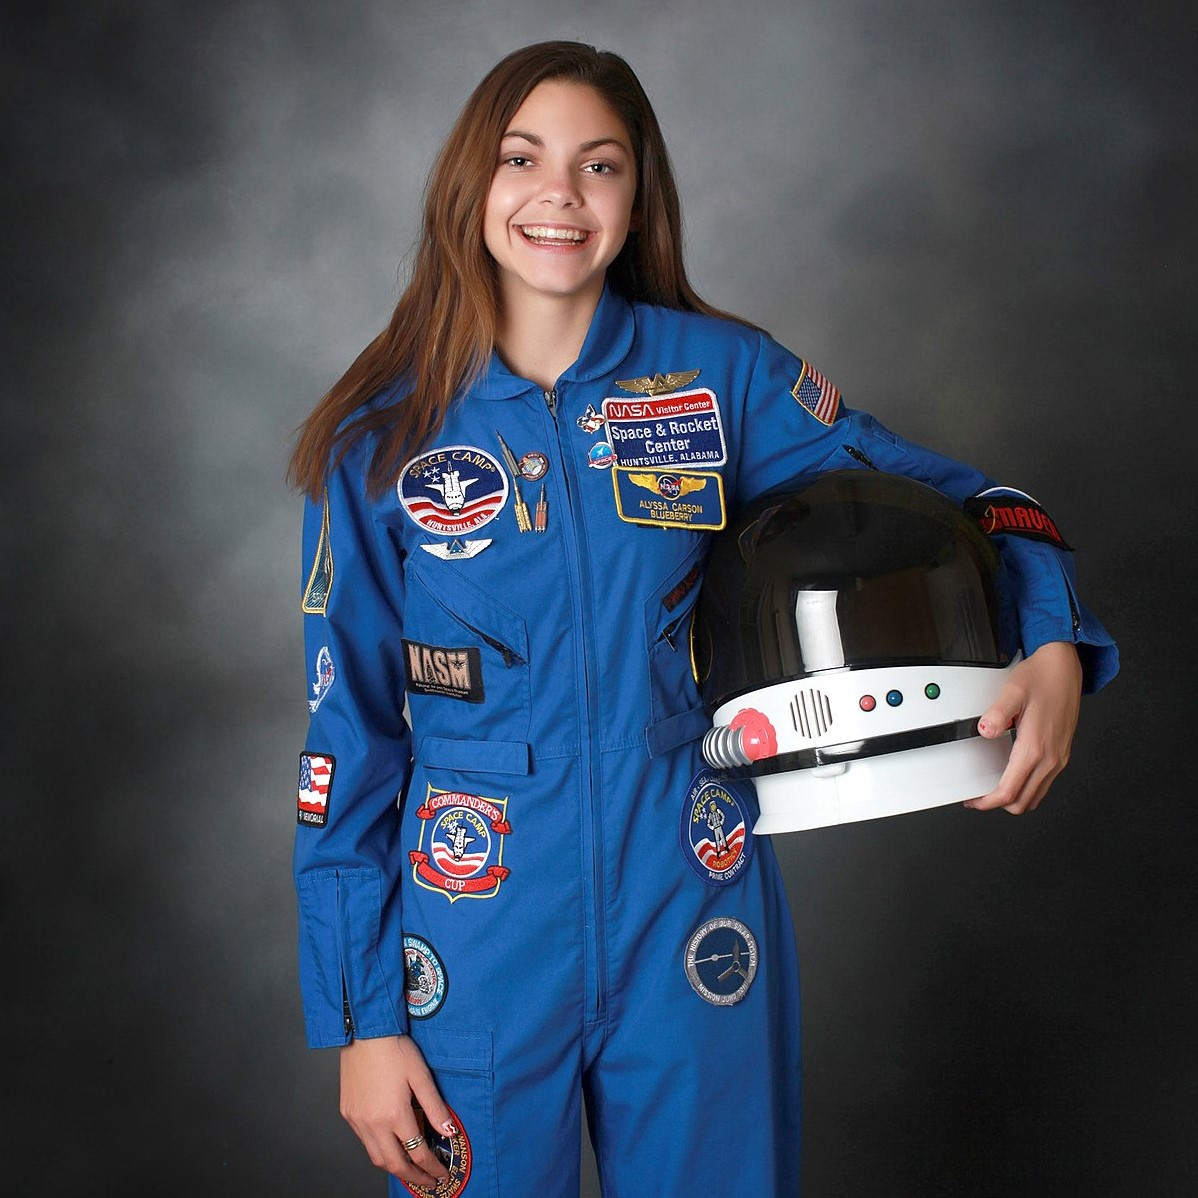 Alyssa Carson, the 19-year-old astronaut who became the youngest person in history to pass all NASA aerospace tests